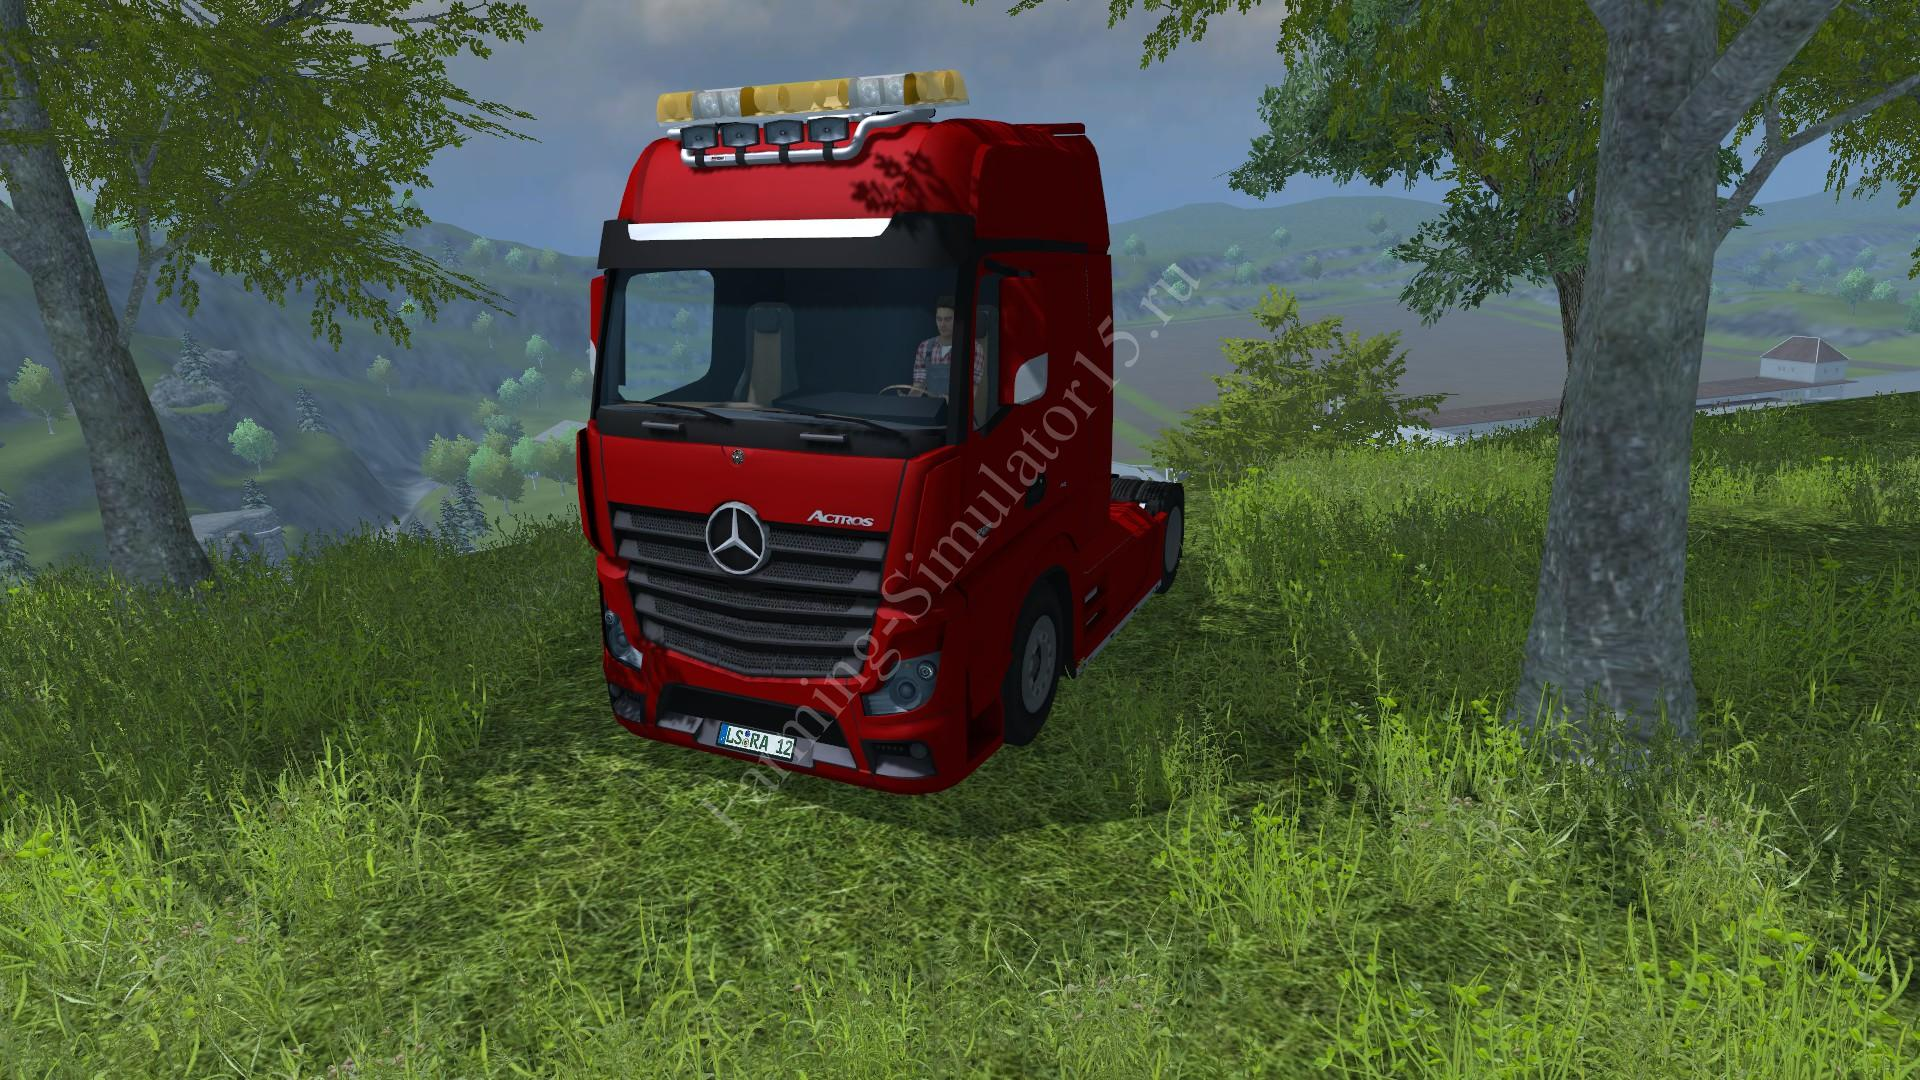 Мод грузовика Mercedes Actros MP4 v 1.0 Farming Simulator 2013, Farming Simulator 13